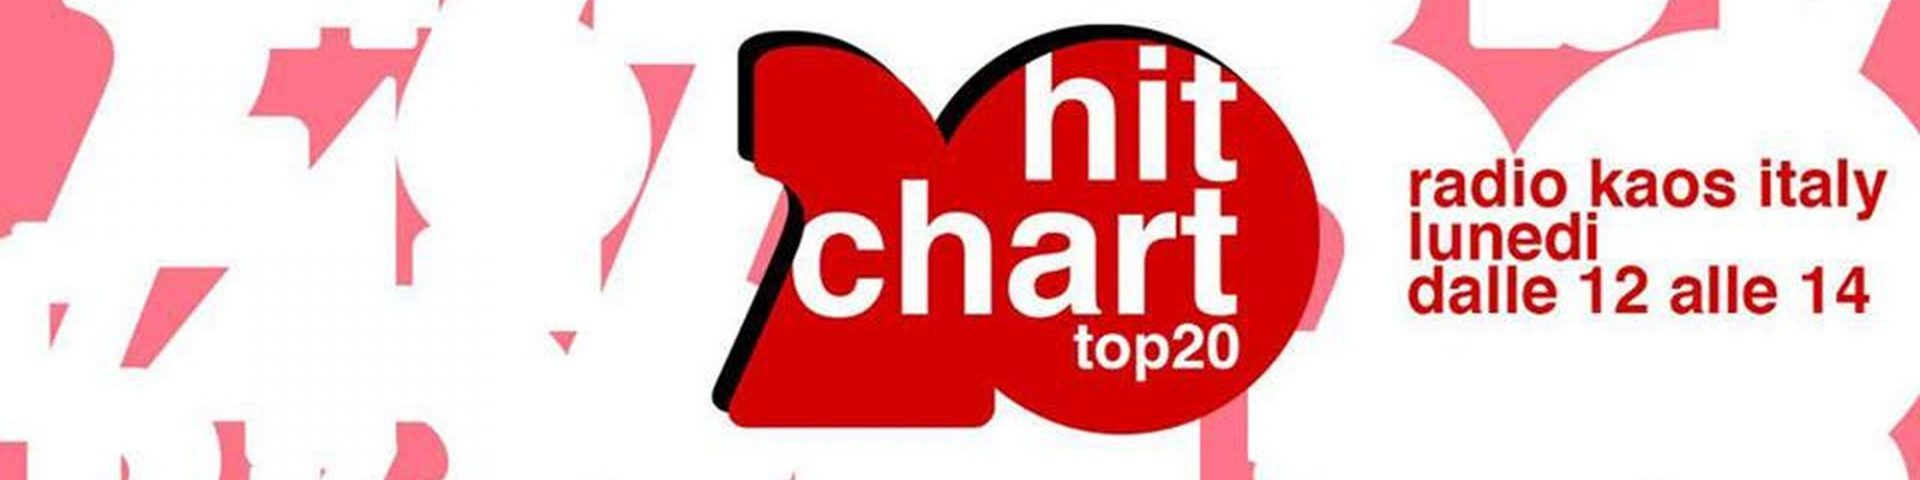 Hit Chart Top 20: classifica dal 26 novembre al 2 dicembre